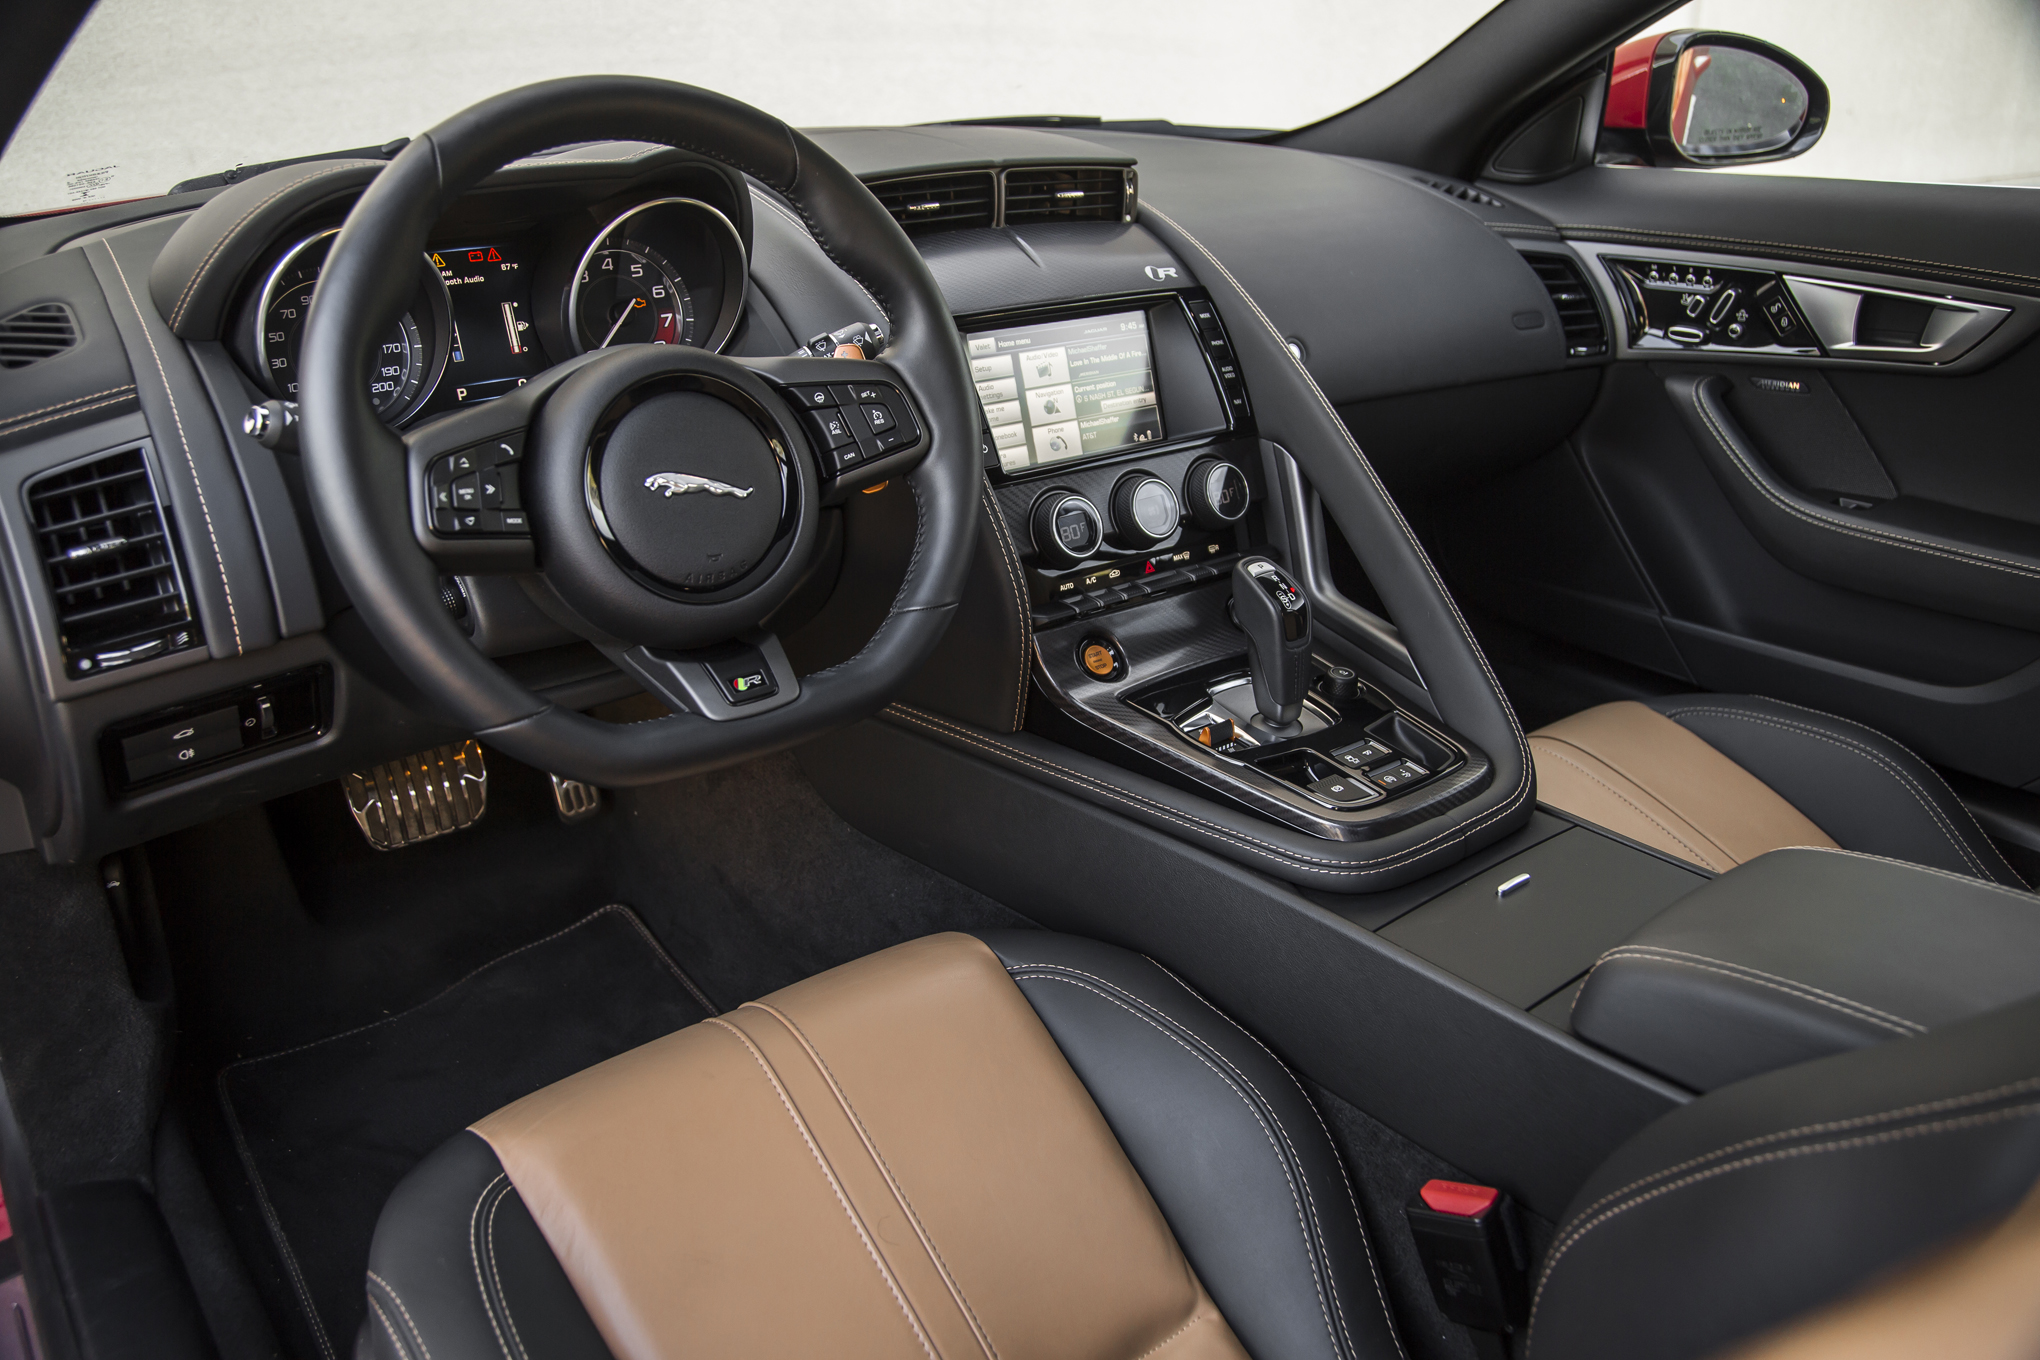 Jaguar F Type R Coupe Interior Images Galleries With A Bite